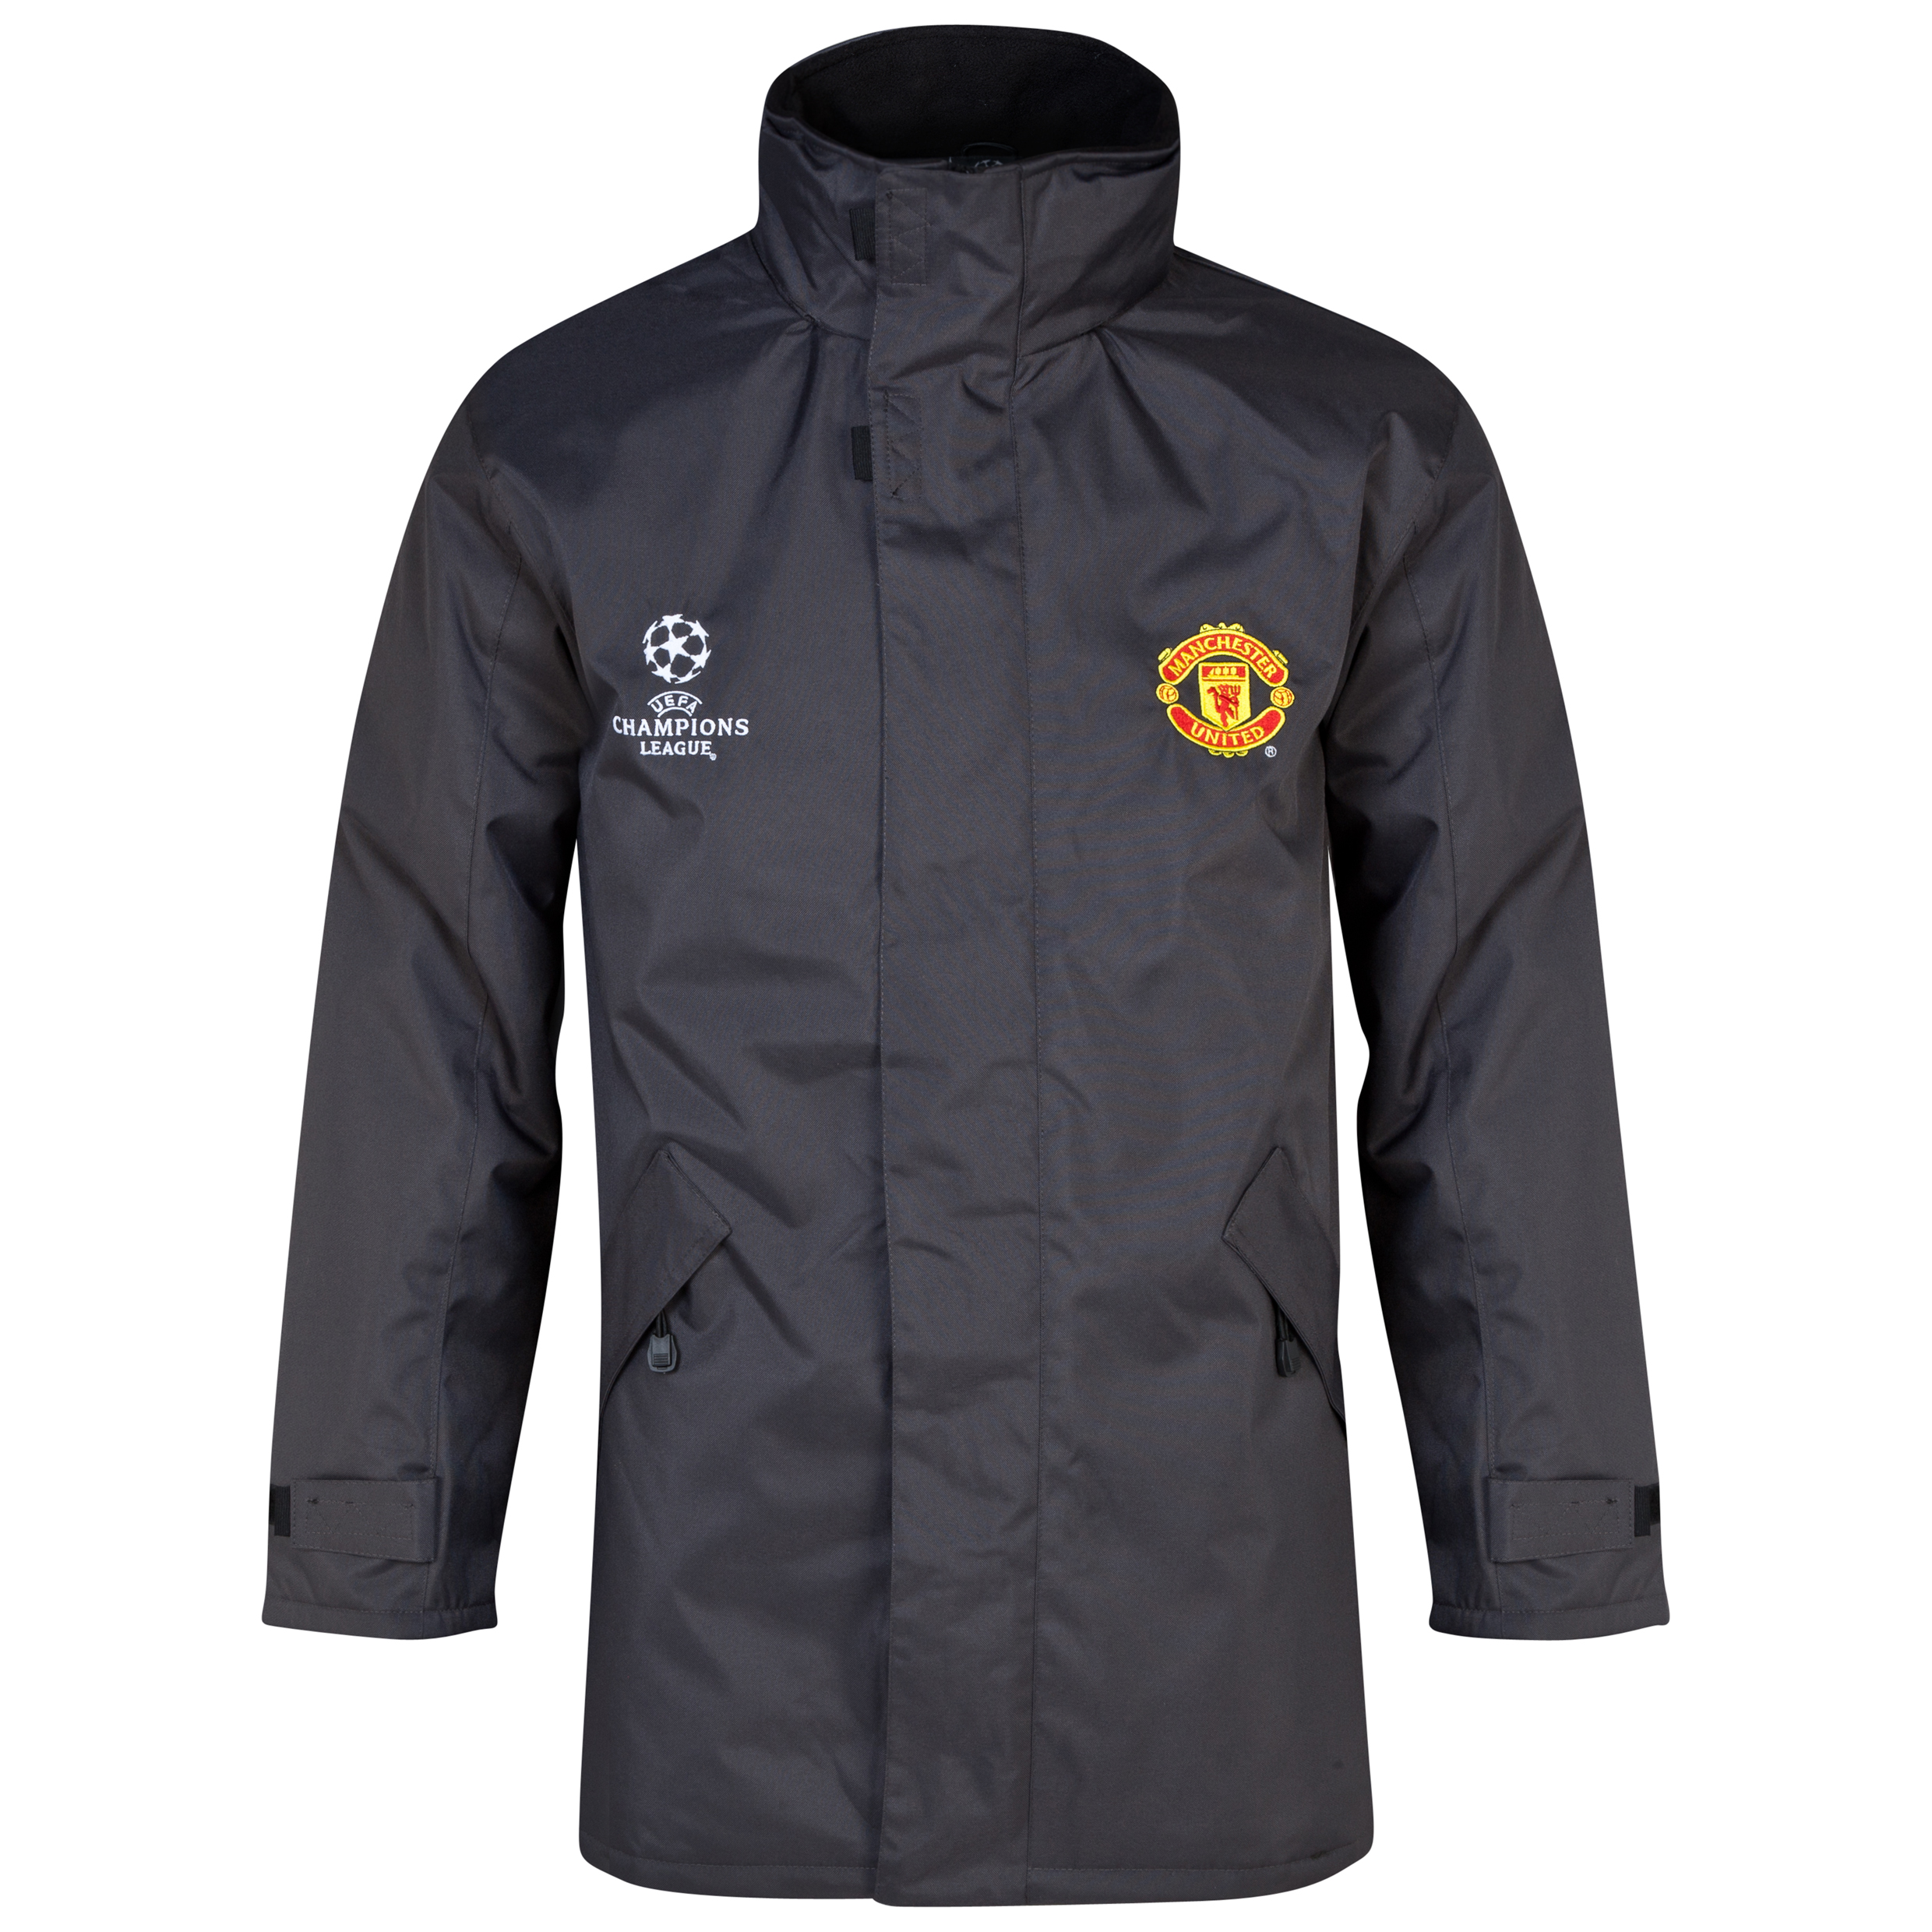 Manchester United UEFA Champions League Heavy Jacket - Mens Charcoal